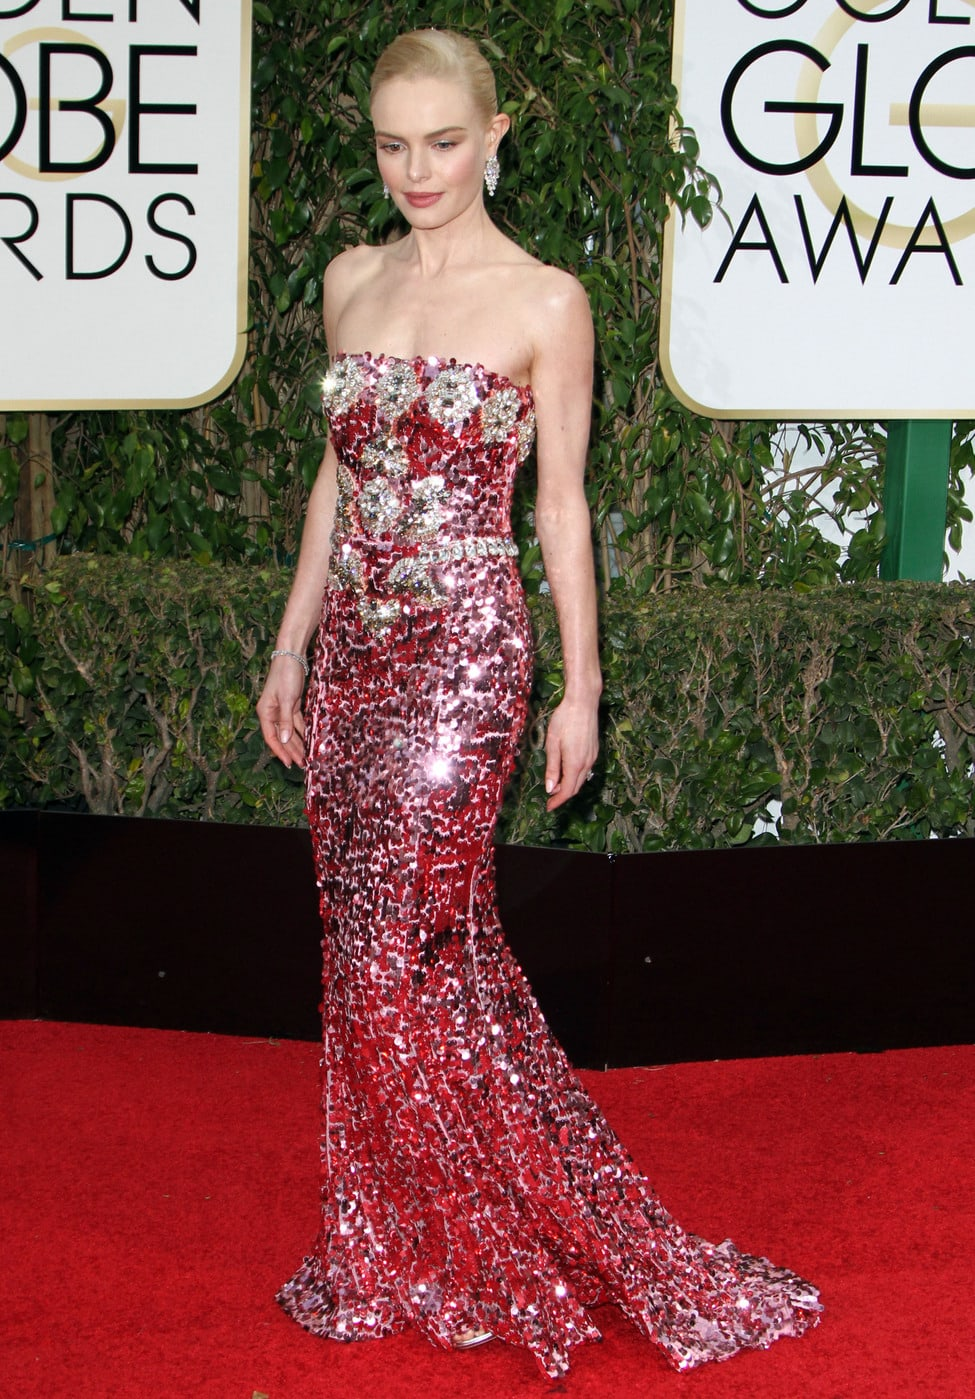 Kate Bosworth at the 2016 Golden Globes